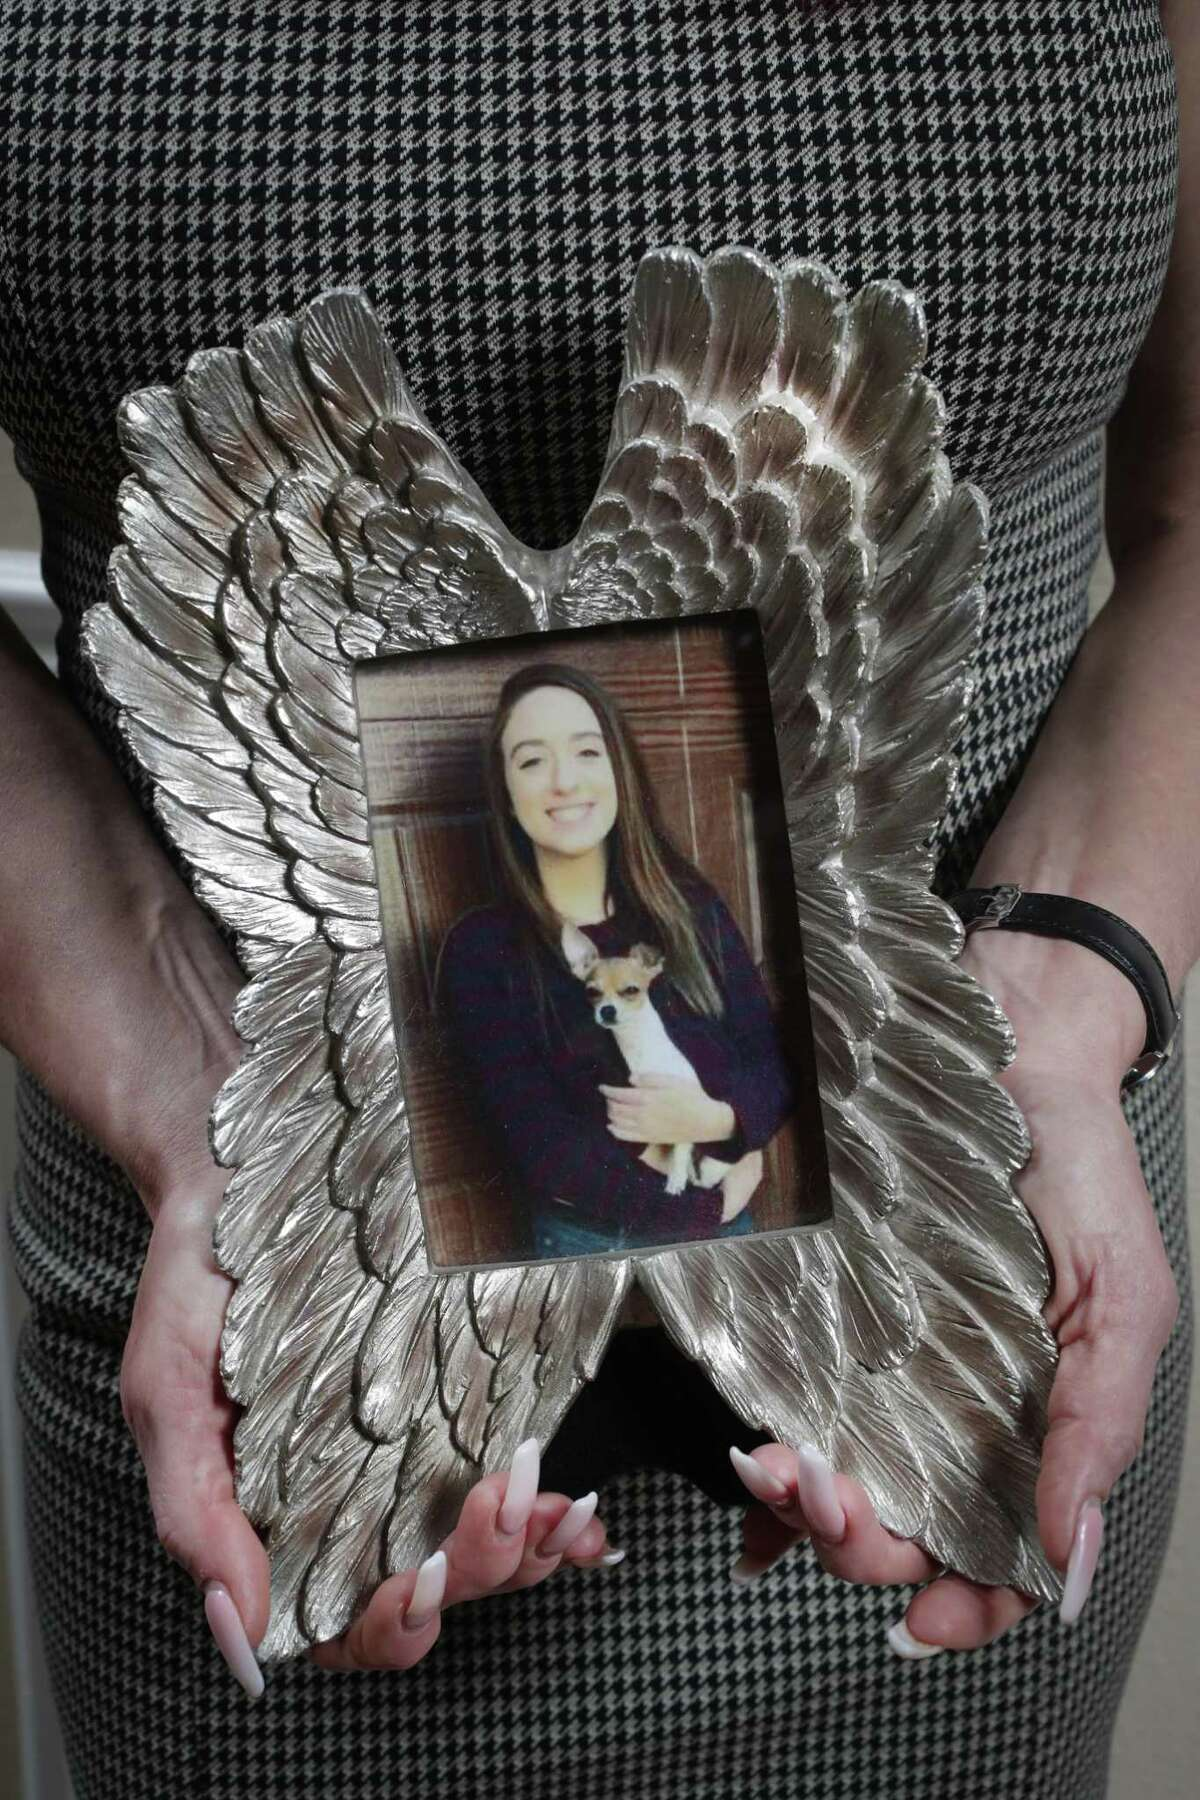 Marentha Sargent holds a photo of her daughter, Adrienne, who died in 2017 when the child of a family friend discharged a firearm that had been left on a kitchen table.